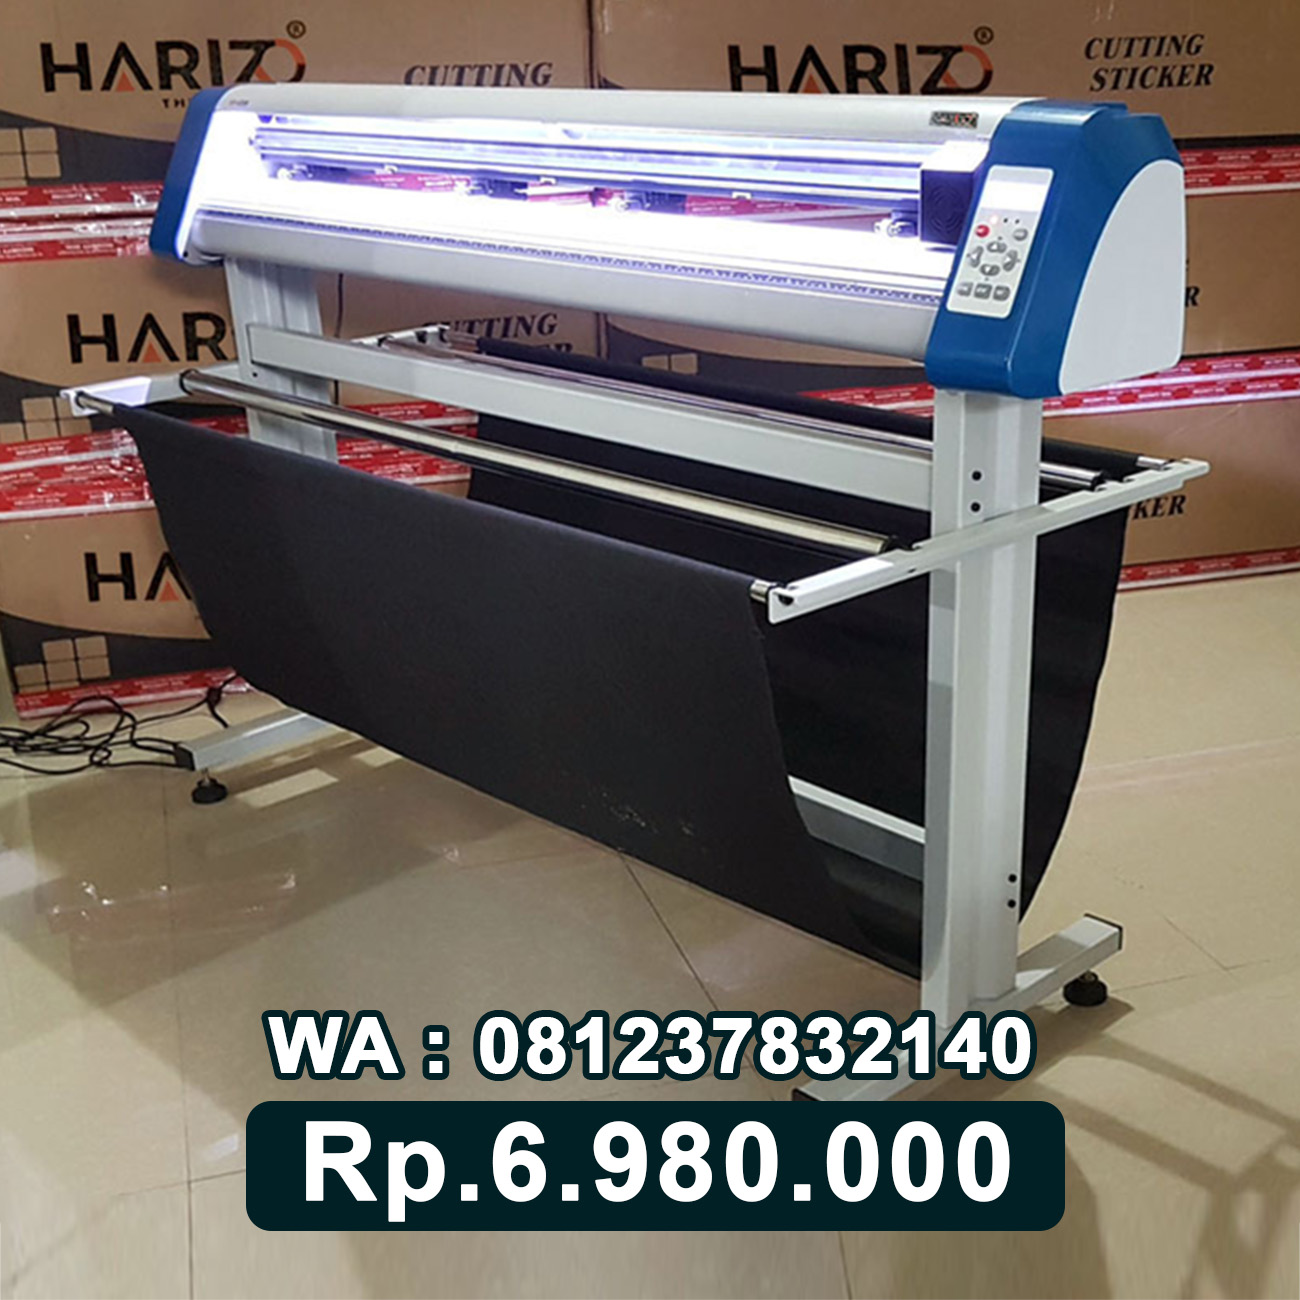 JUAL MESIN CUTTING STICKER HARIZO 1350 Kotabumi